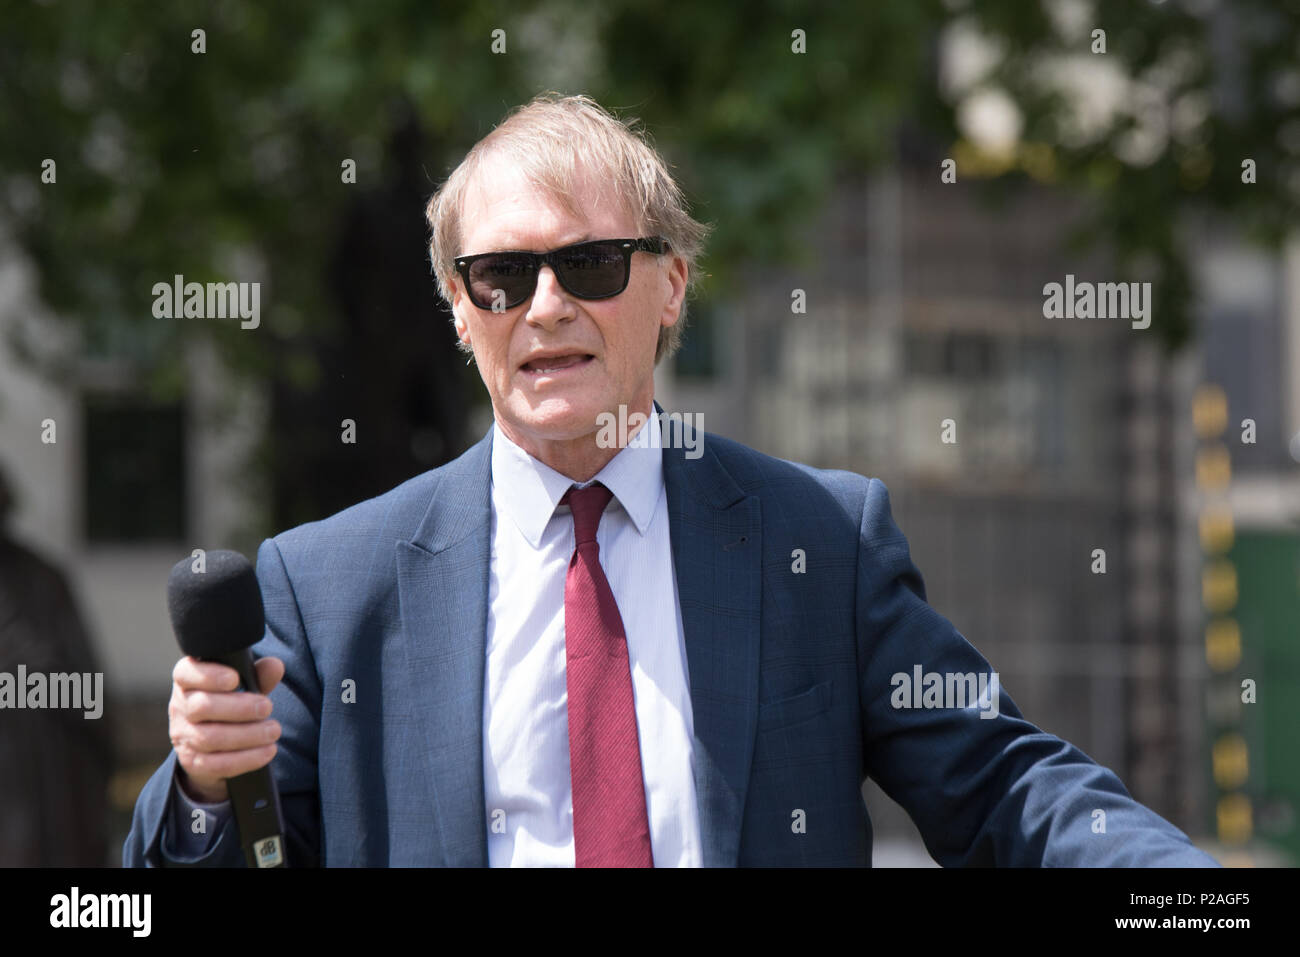 Sir Roger GaleStock Photos and Images